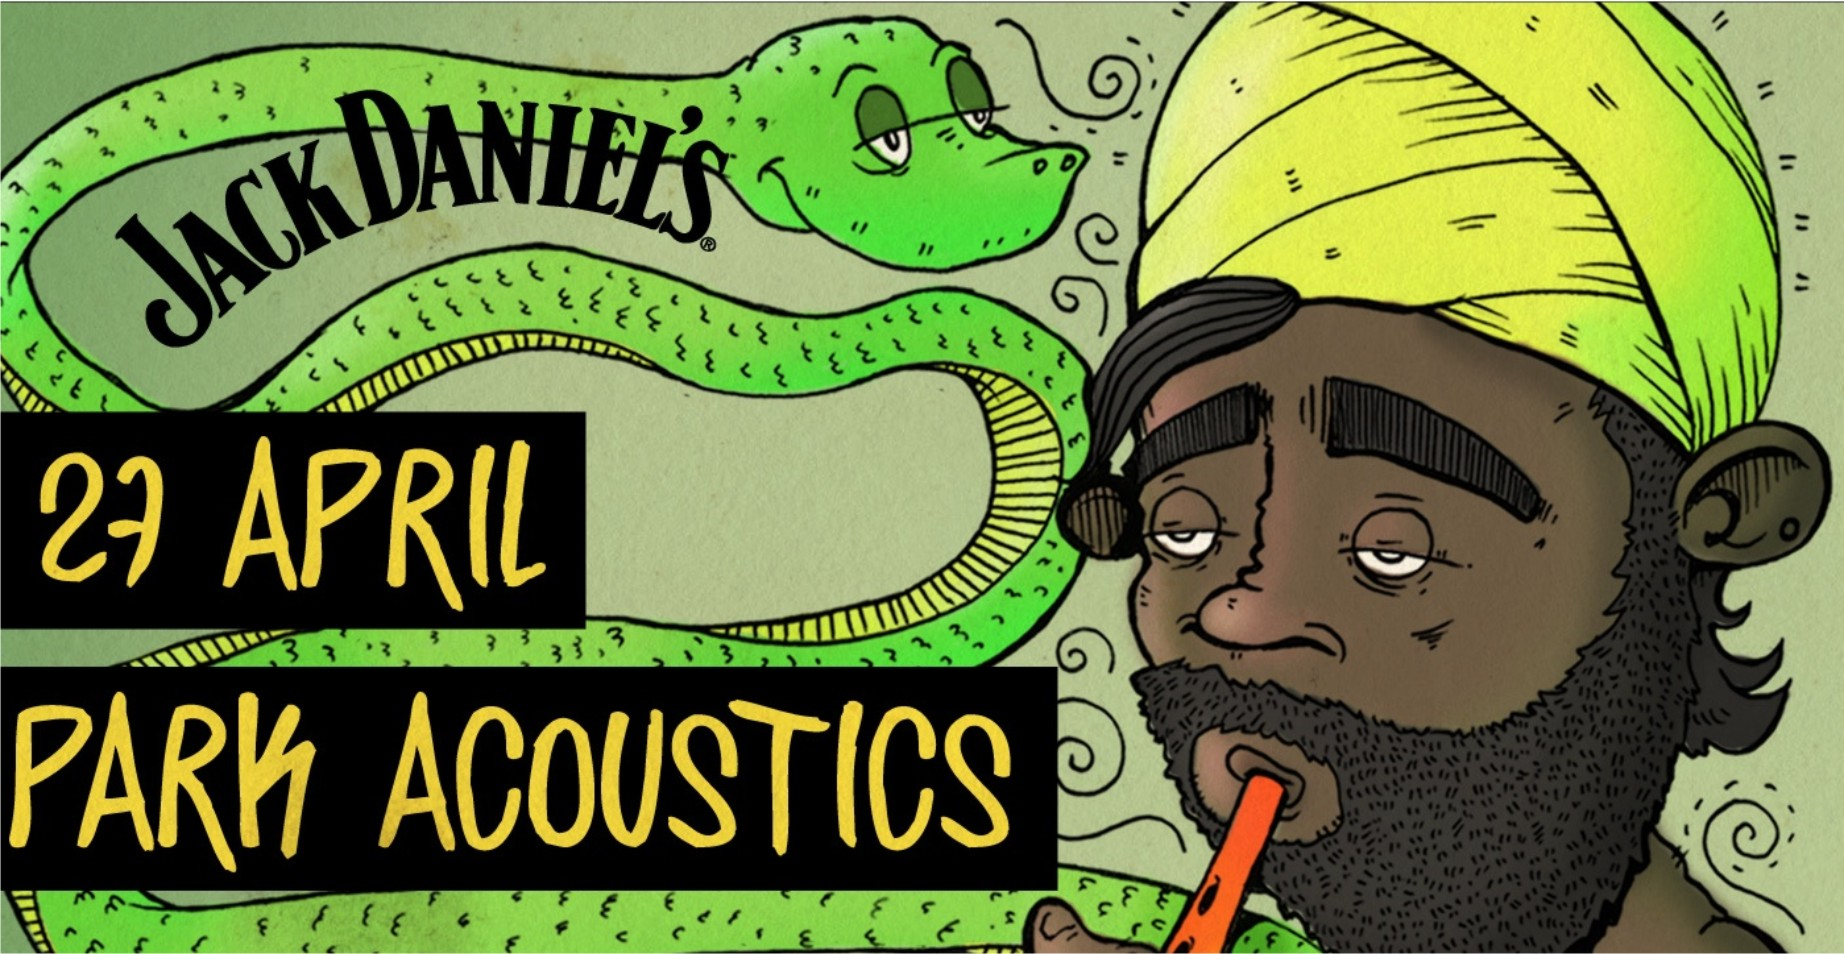 Park Acoustics set to rock South African Music Fans